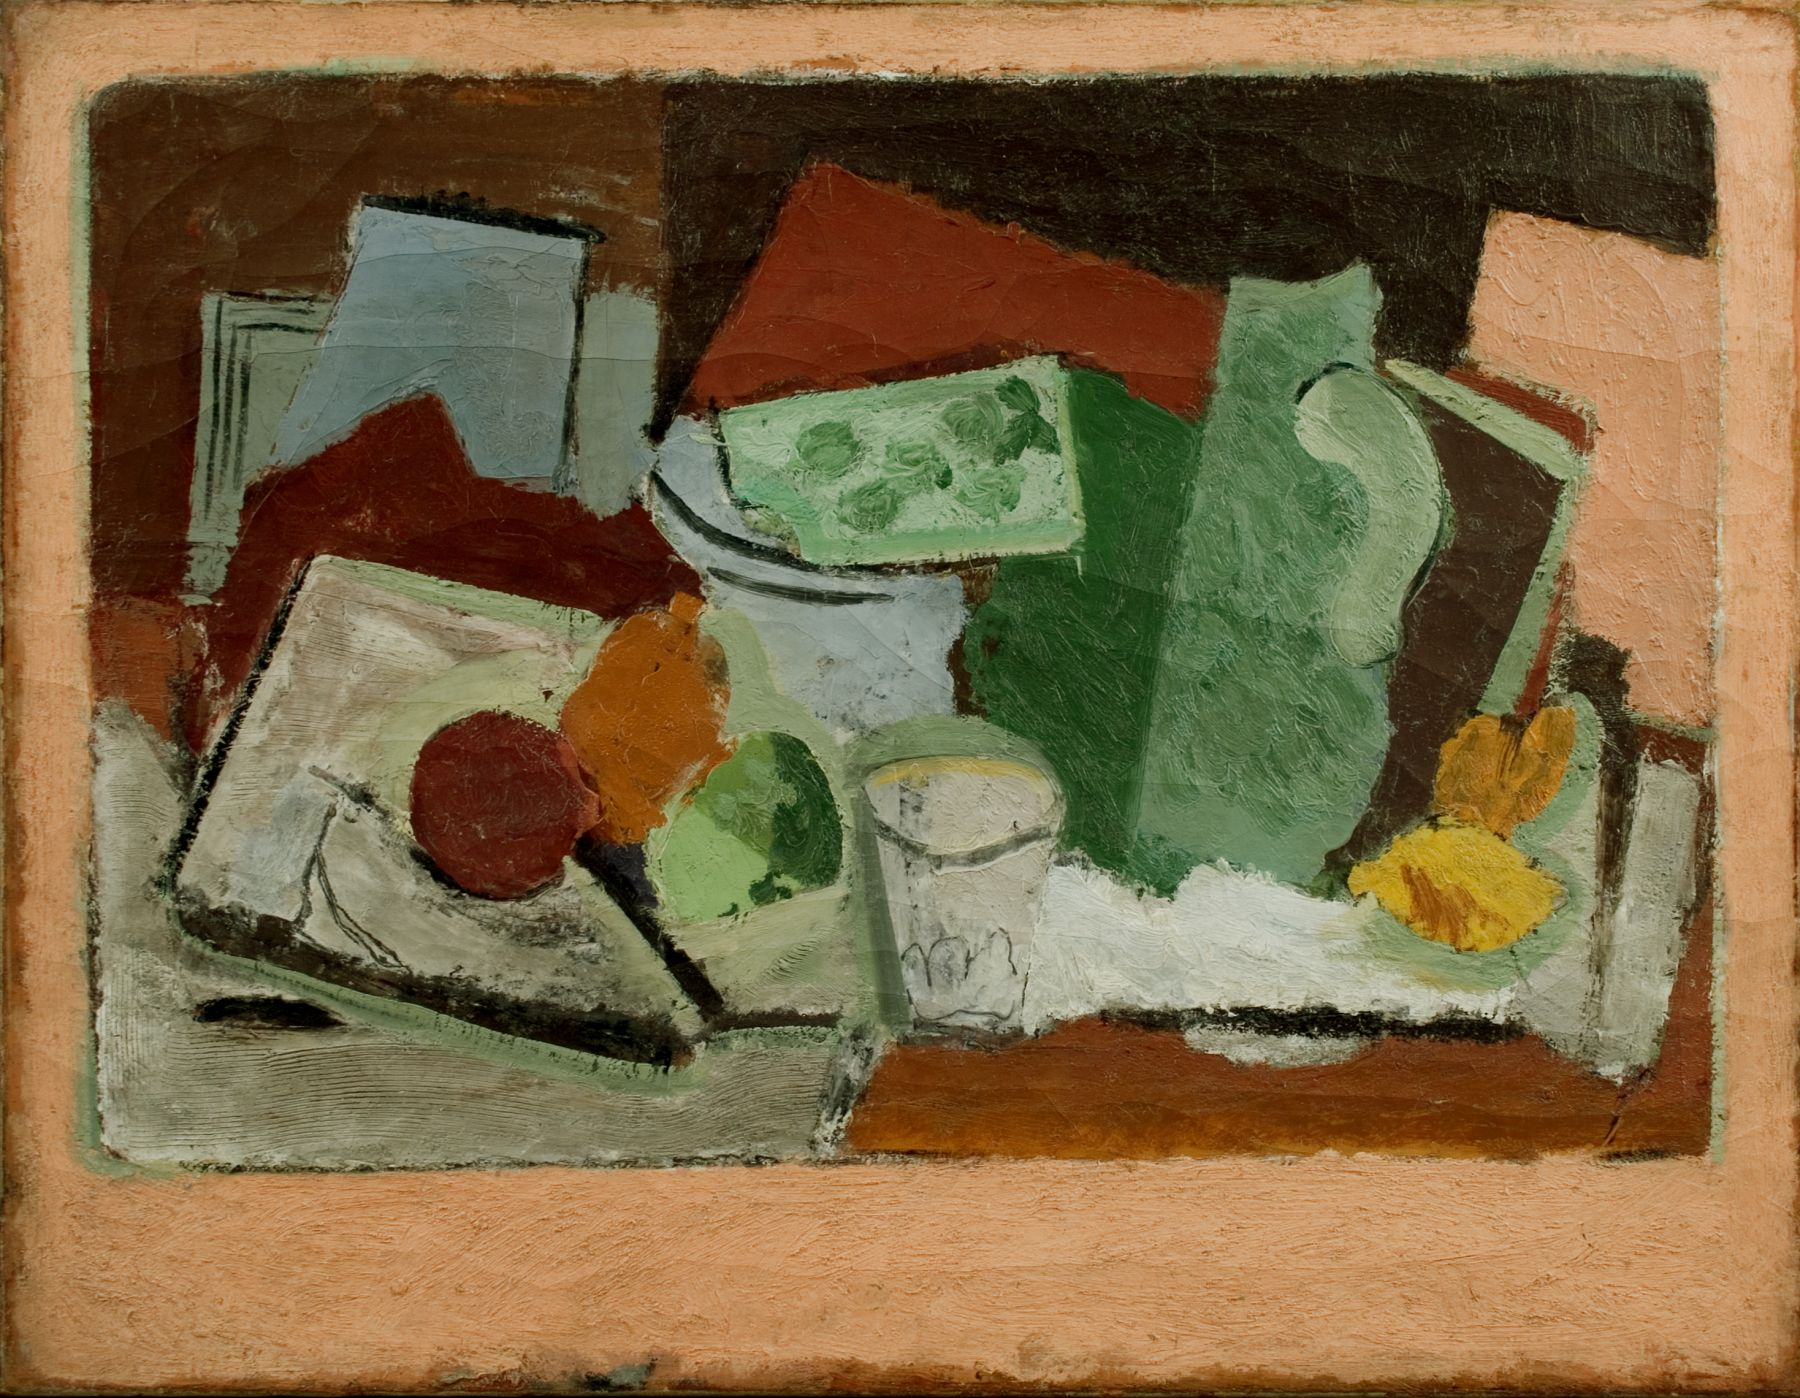 Arshile Gorky, Still Life (Nature Morte), c.1928, oil on canvas, 26 1/8 x 34 1/8 inches